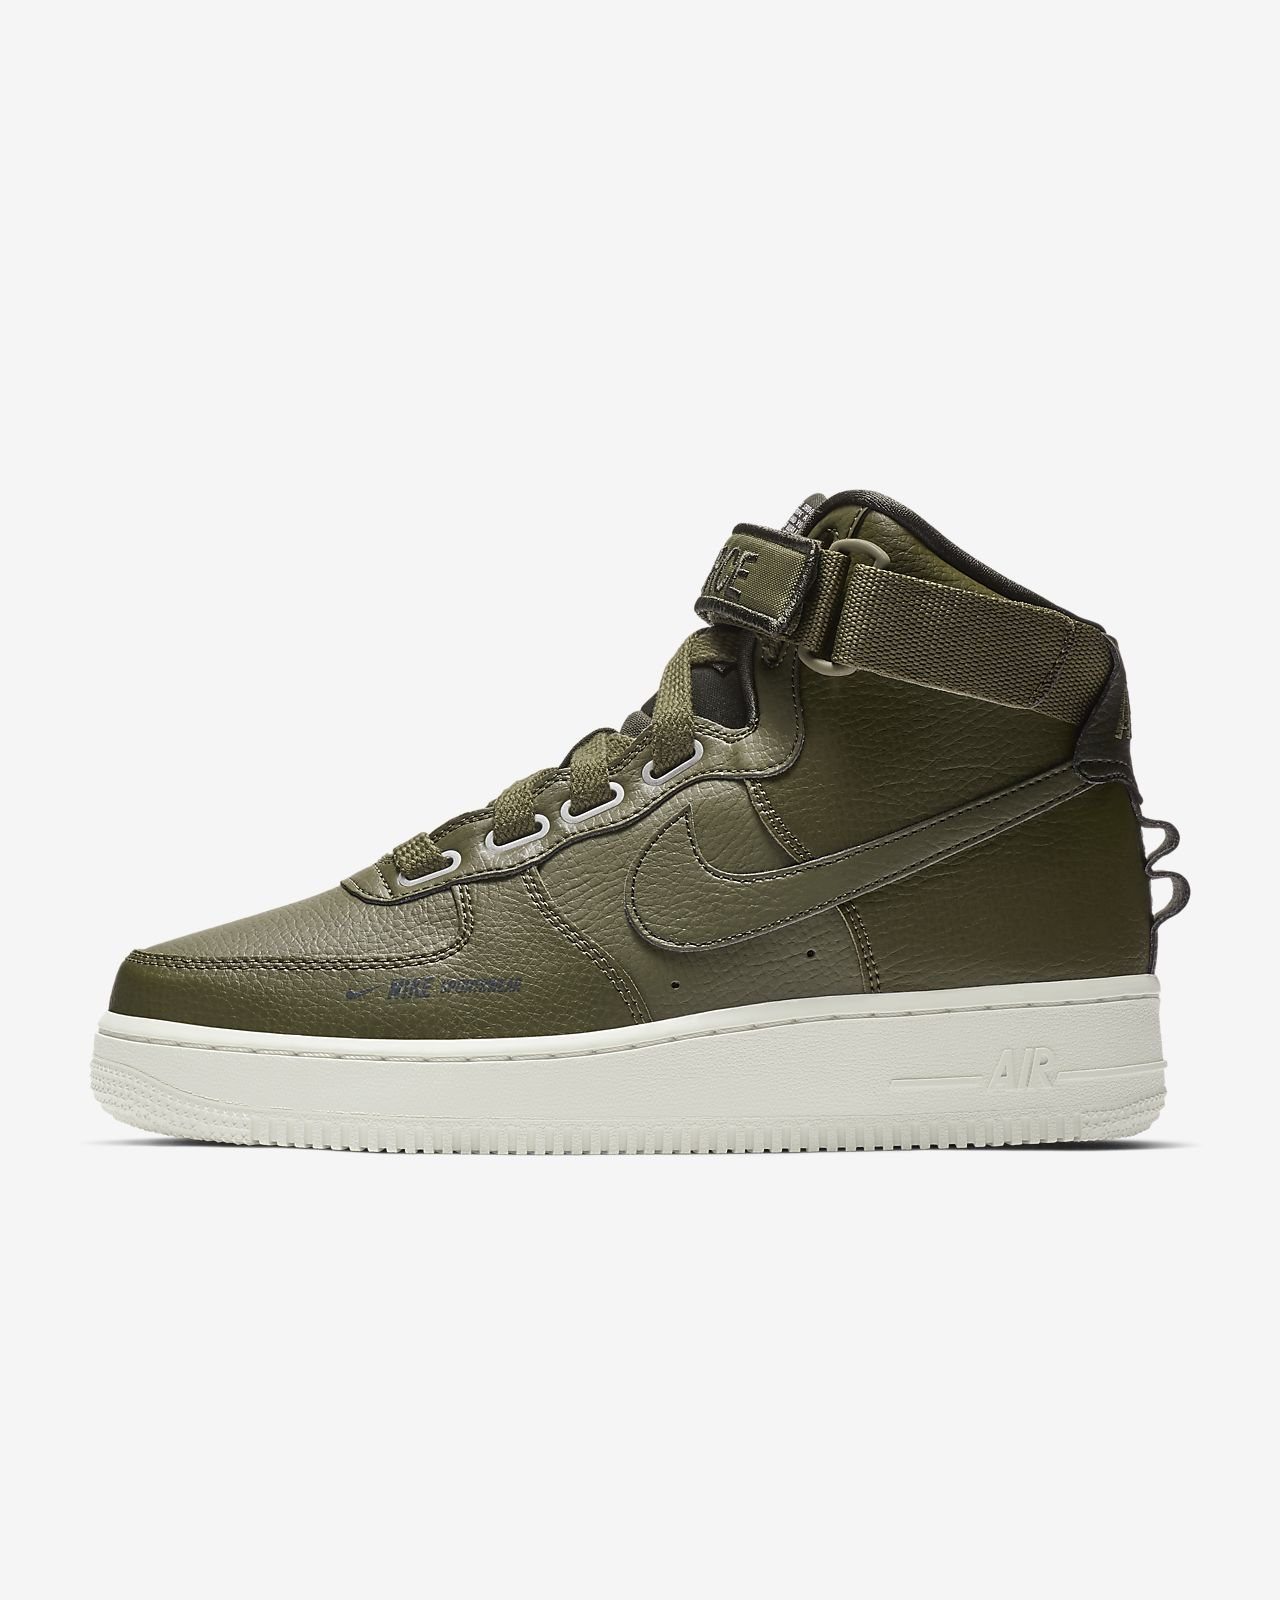 2nike scarpe uomo air force